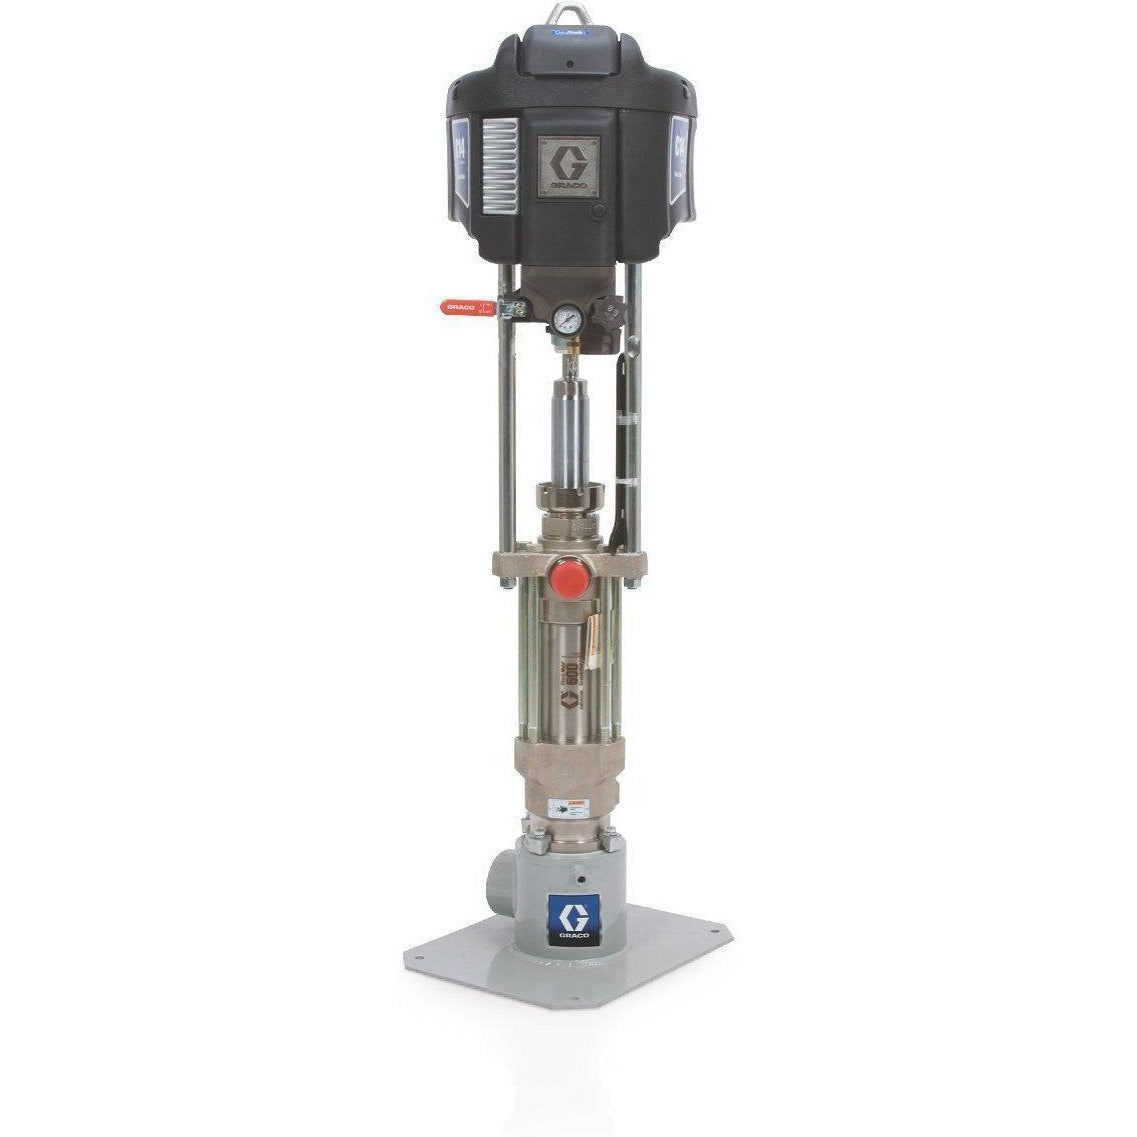 Graco 247974 Nxt™ Check-Mateâ® 29:1 Grease Pump Package With Datatrak - Floor Standing - Fireball Equipment Ltd.